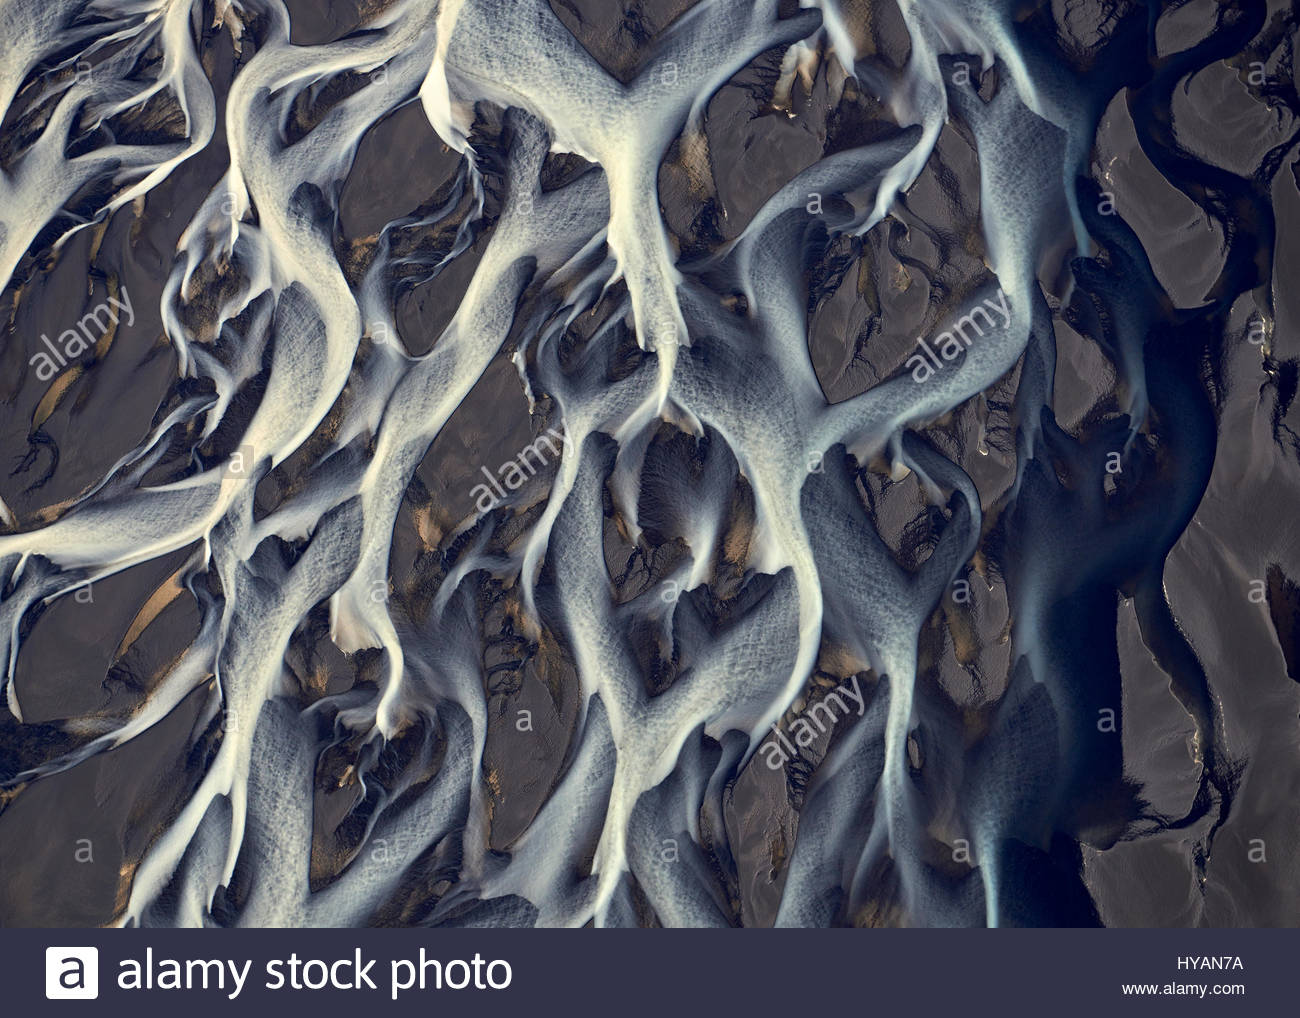 ICELAND WILDERNESS: Pictures of Iceland's river system from above. Like a scene from a sci-fi movie you could be - Stock Image